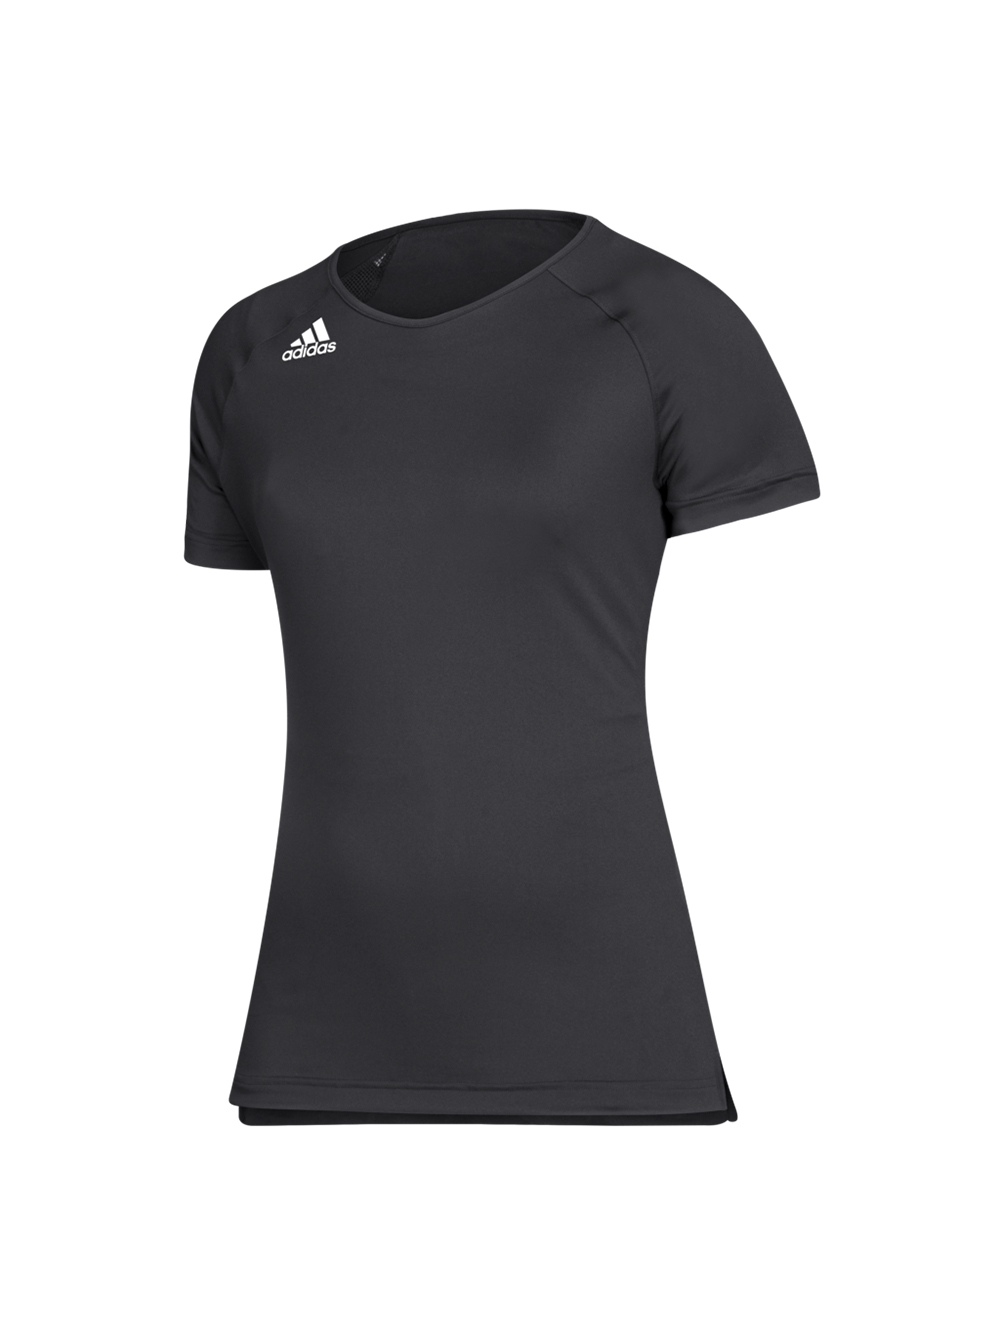 Adidas Hi-Lo Cap Jersey | Midwest Volleyball Warehouse